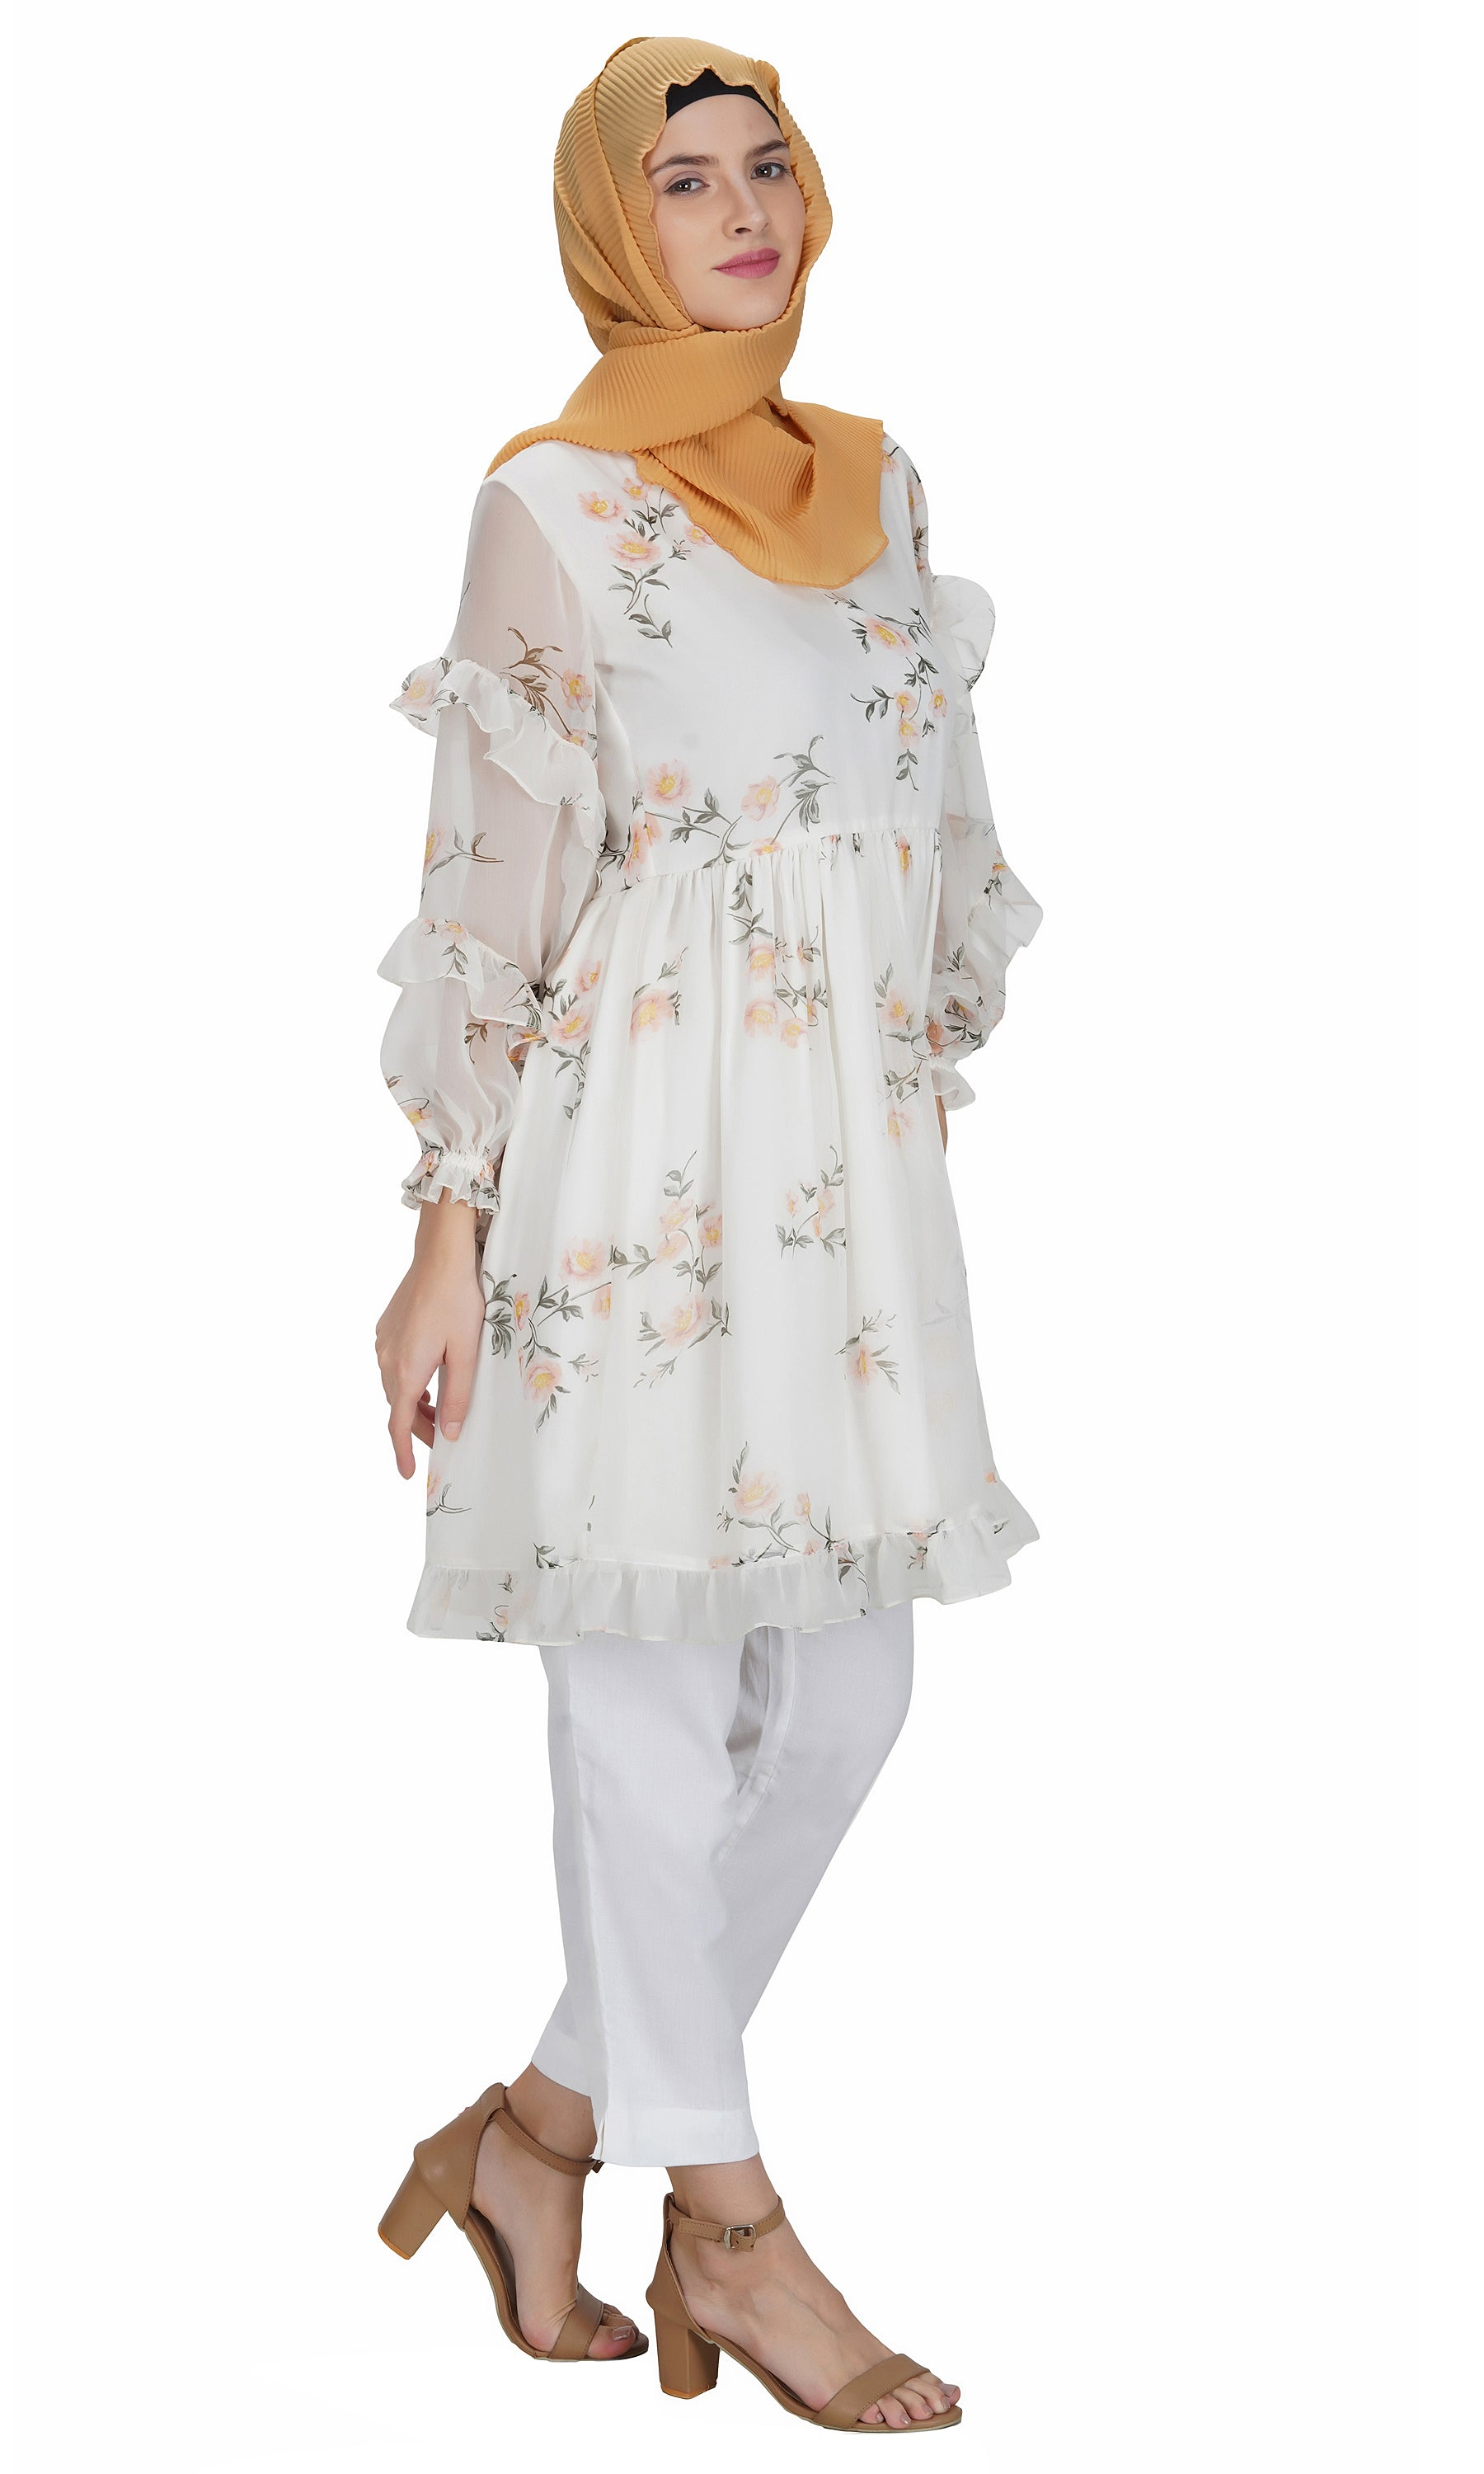 Ruffle Sleeve Dress By Ruqsar